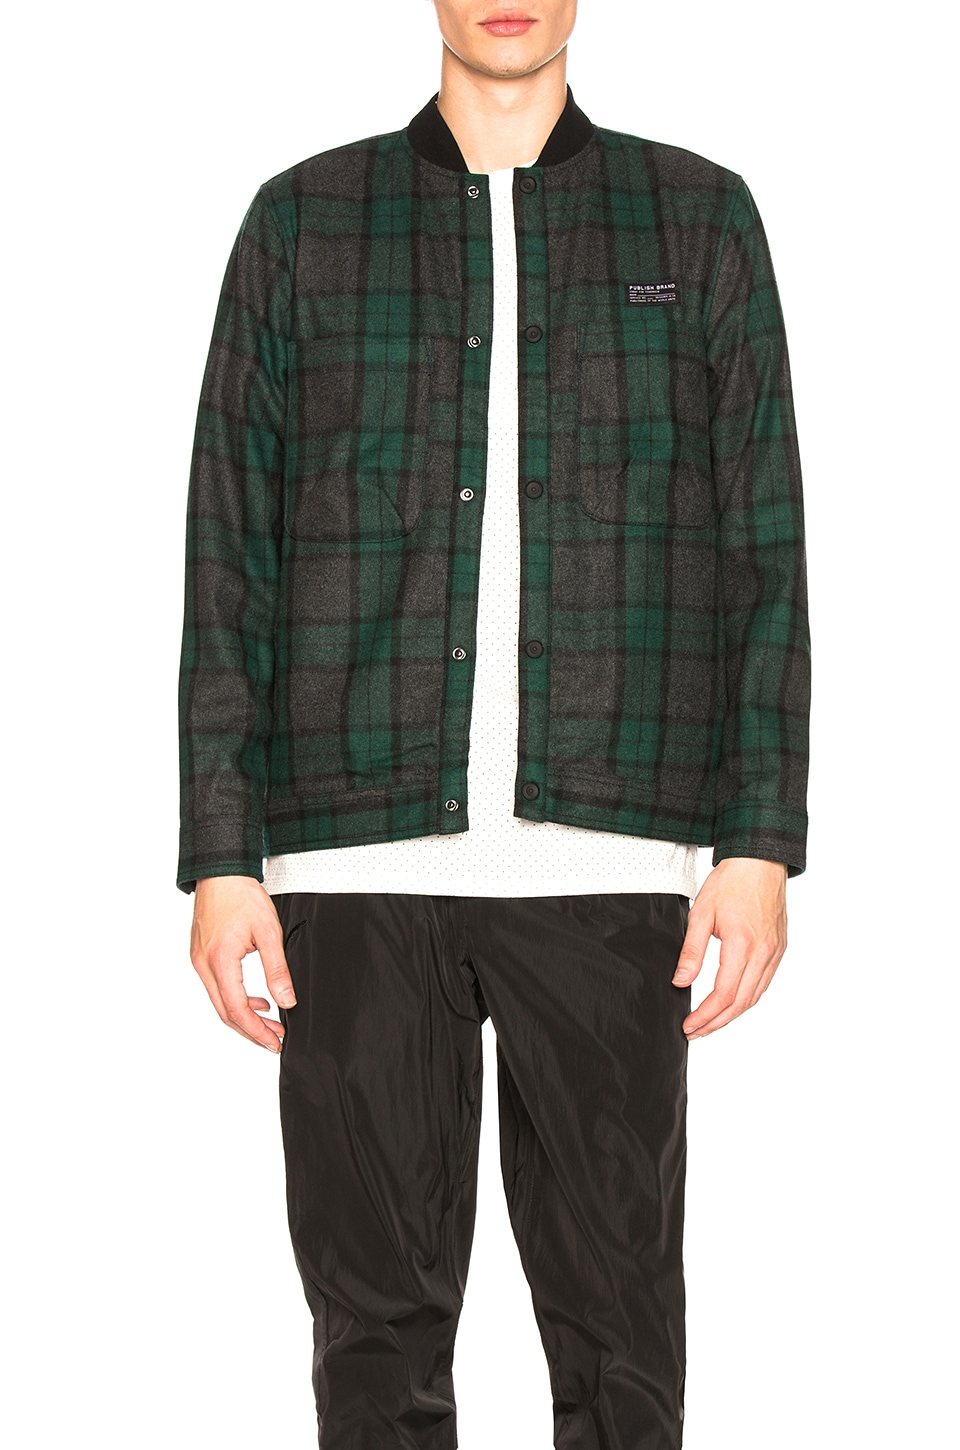 Publish Alonzo Jacket in Green